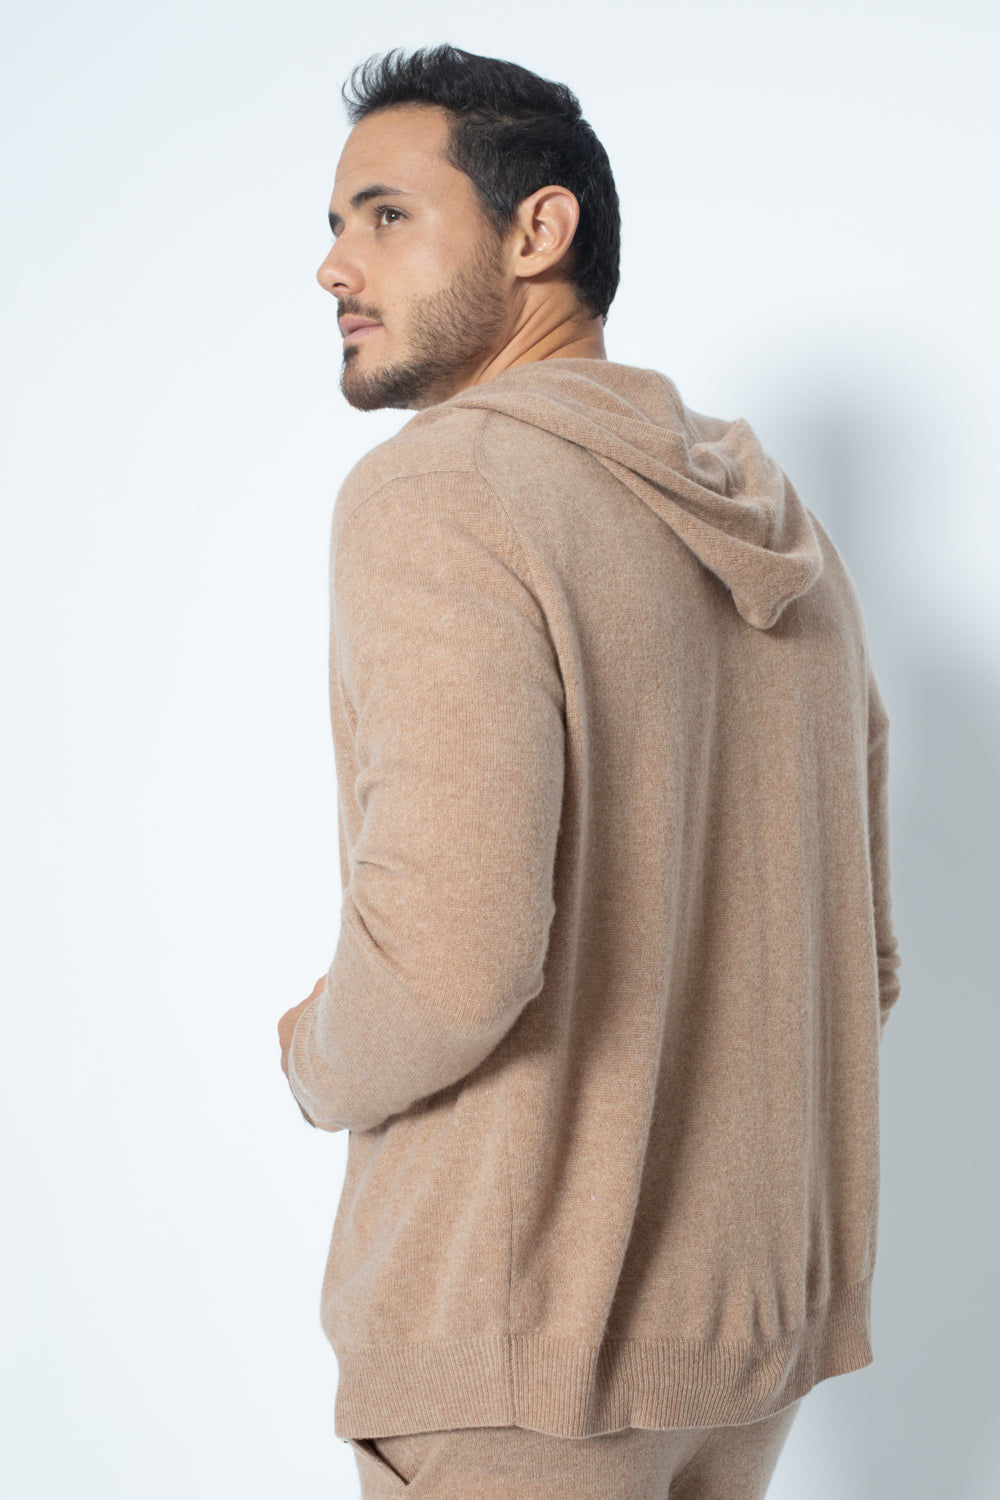 Hoodie neurre Camel 100% Cachemire